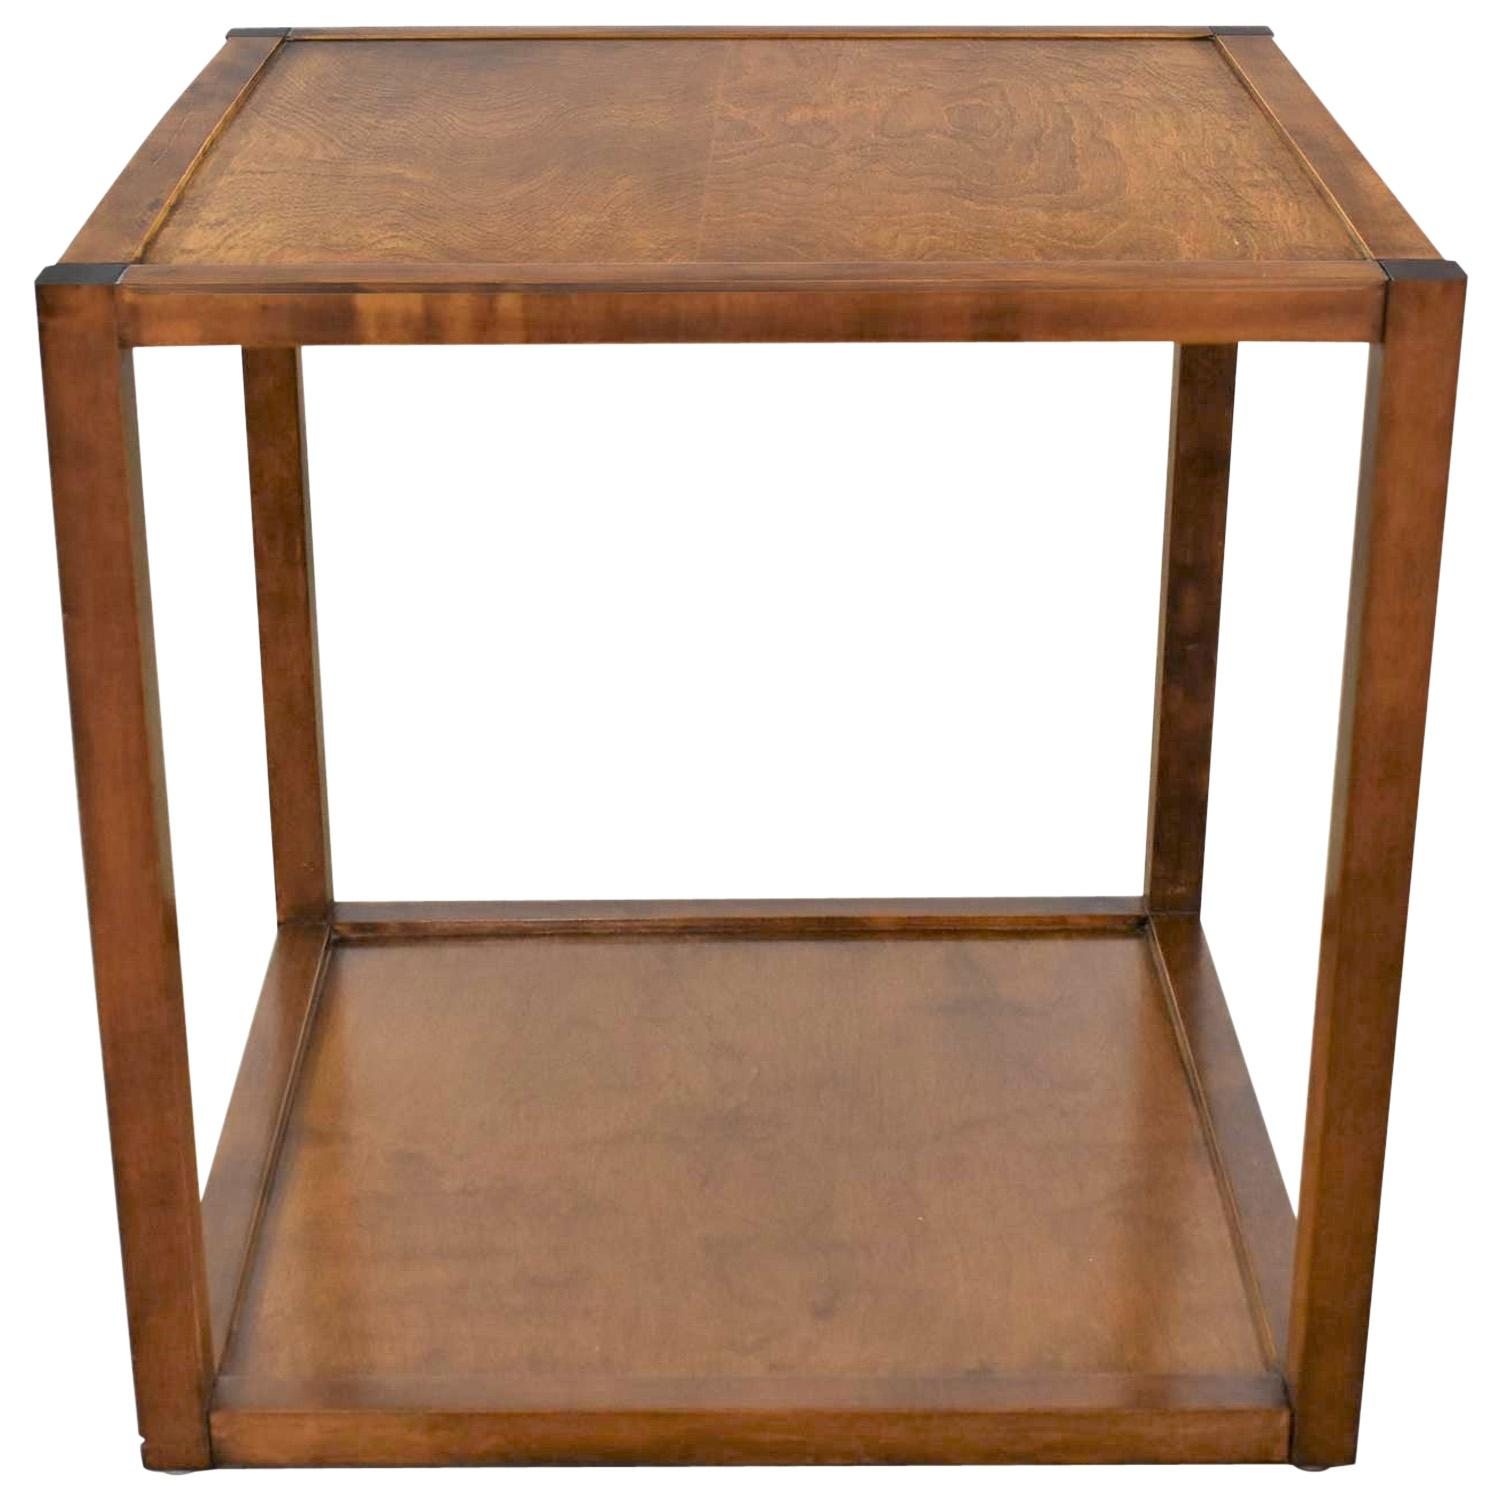 Small Mid-Century Modern Cube Like Side End or Occasional Table